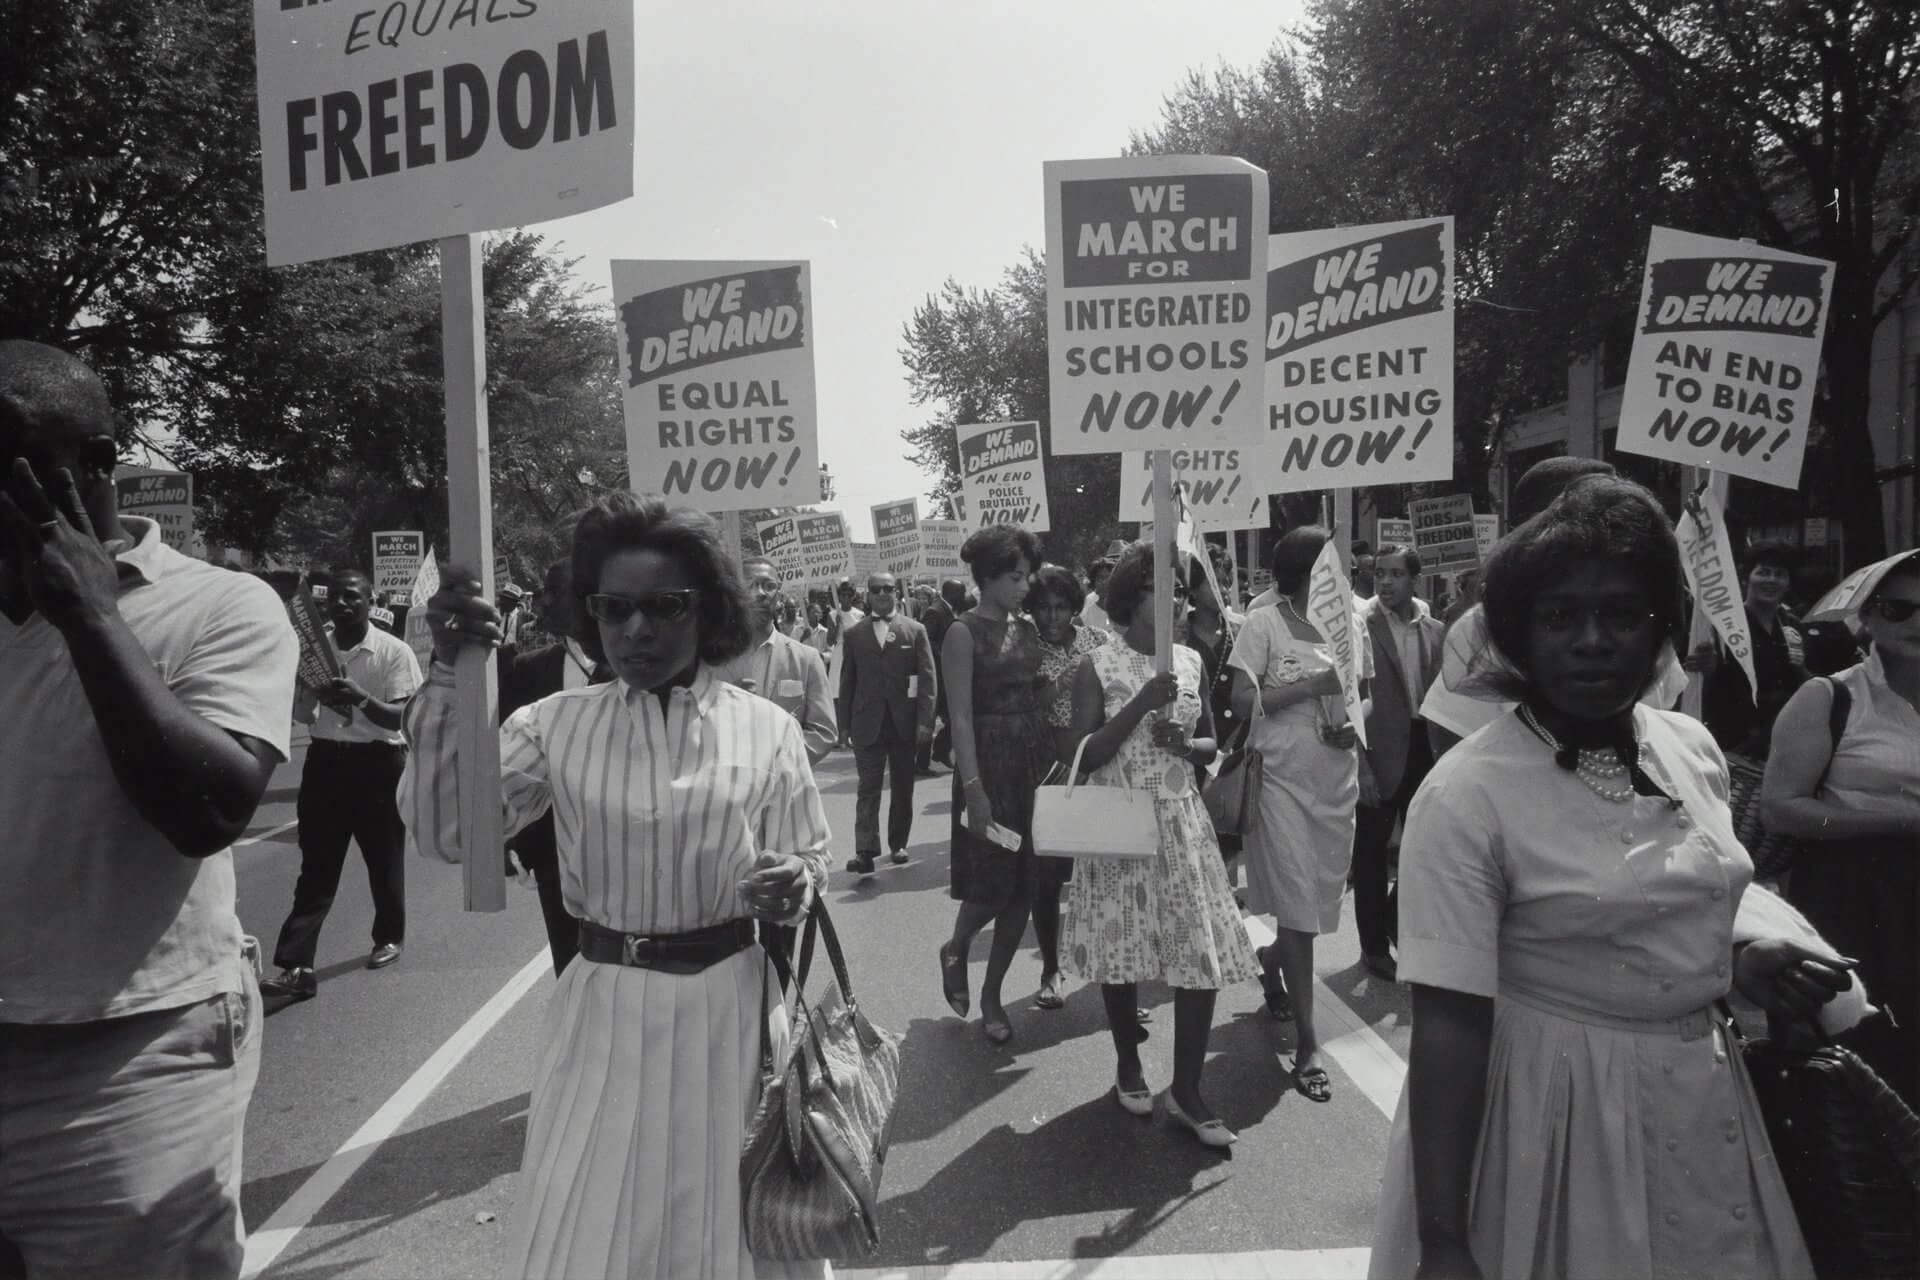 Black and white image of people marching for equal rights holding placards and signs